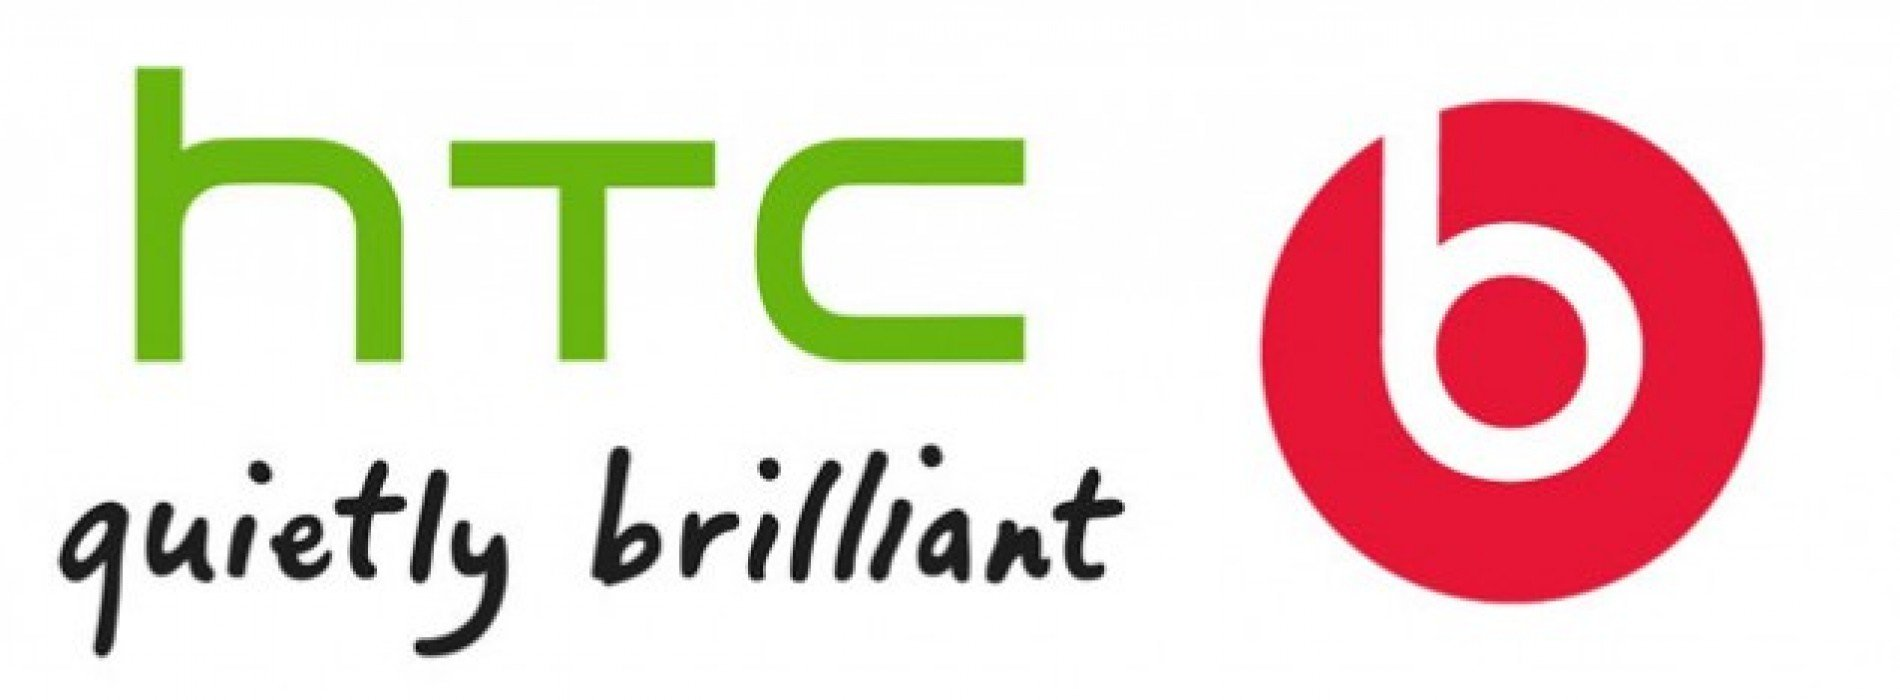 HTC and Beats deal comes to end with $265 million buyback